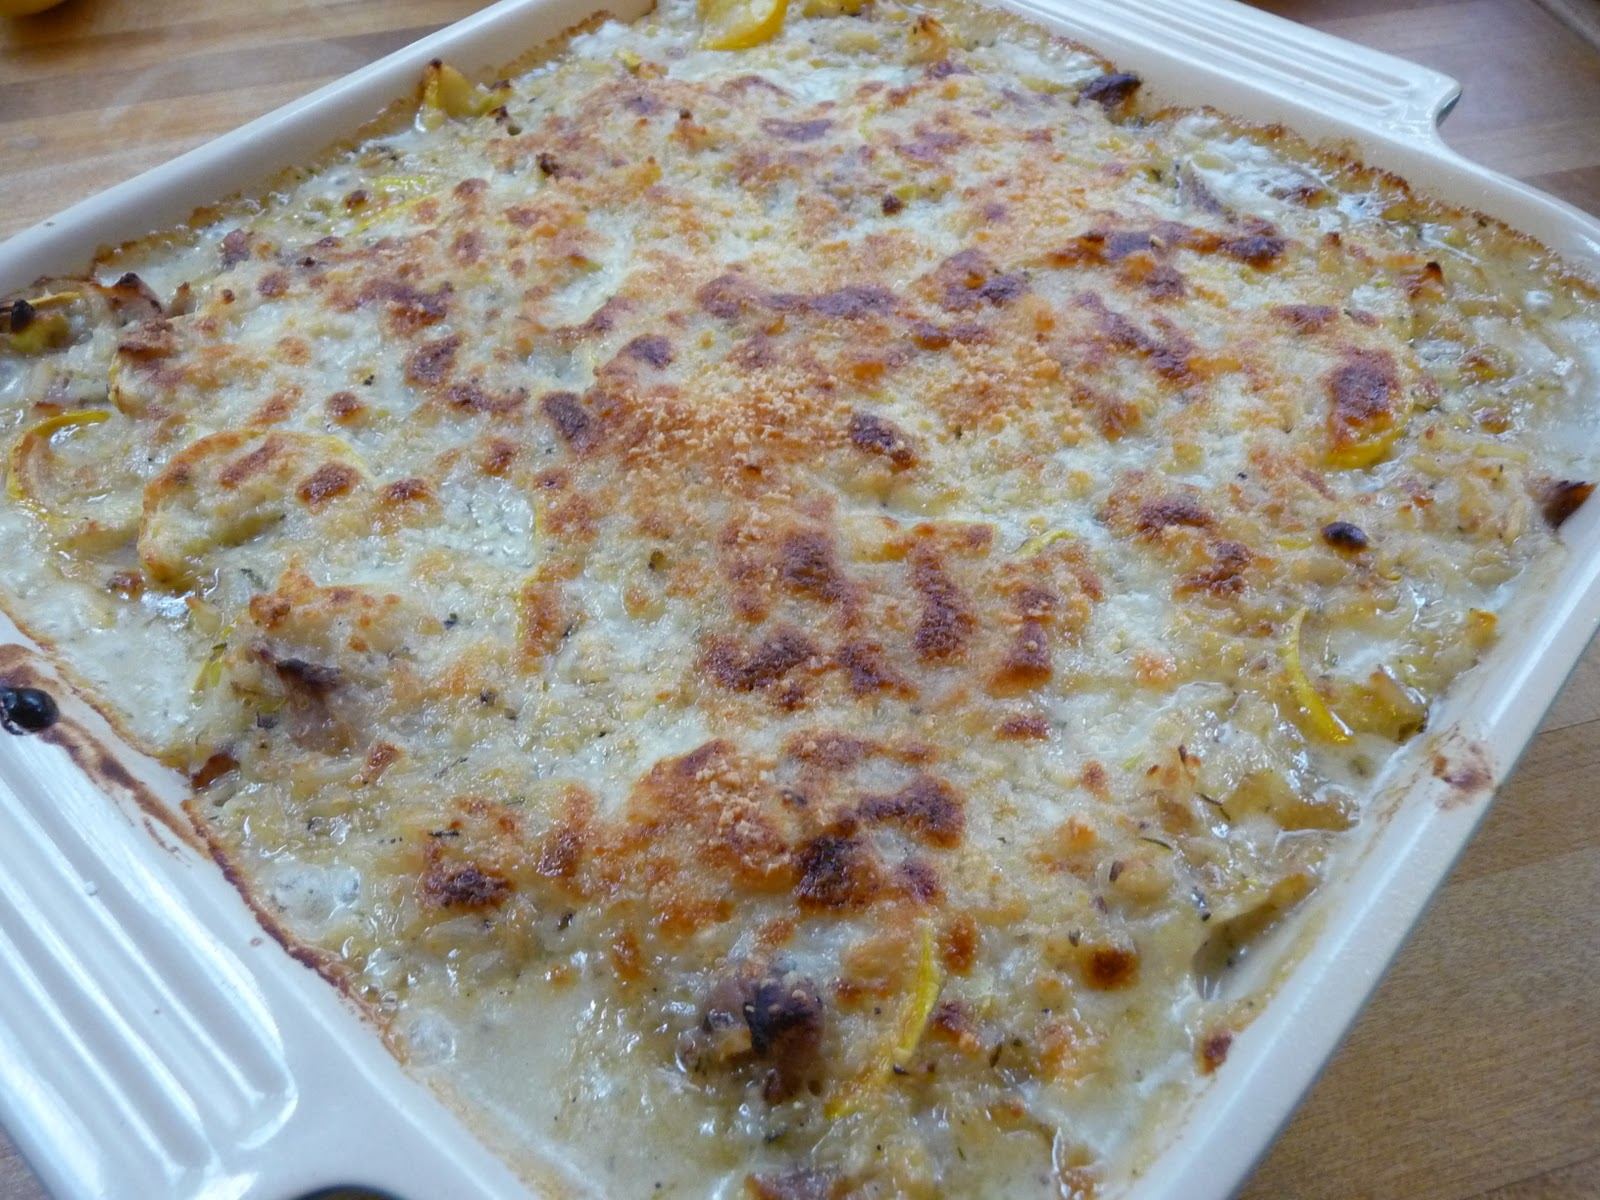 ... Brewing in the Kitchen: Summer Squash, Chicken and Rice Casserole